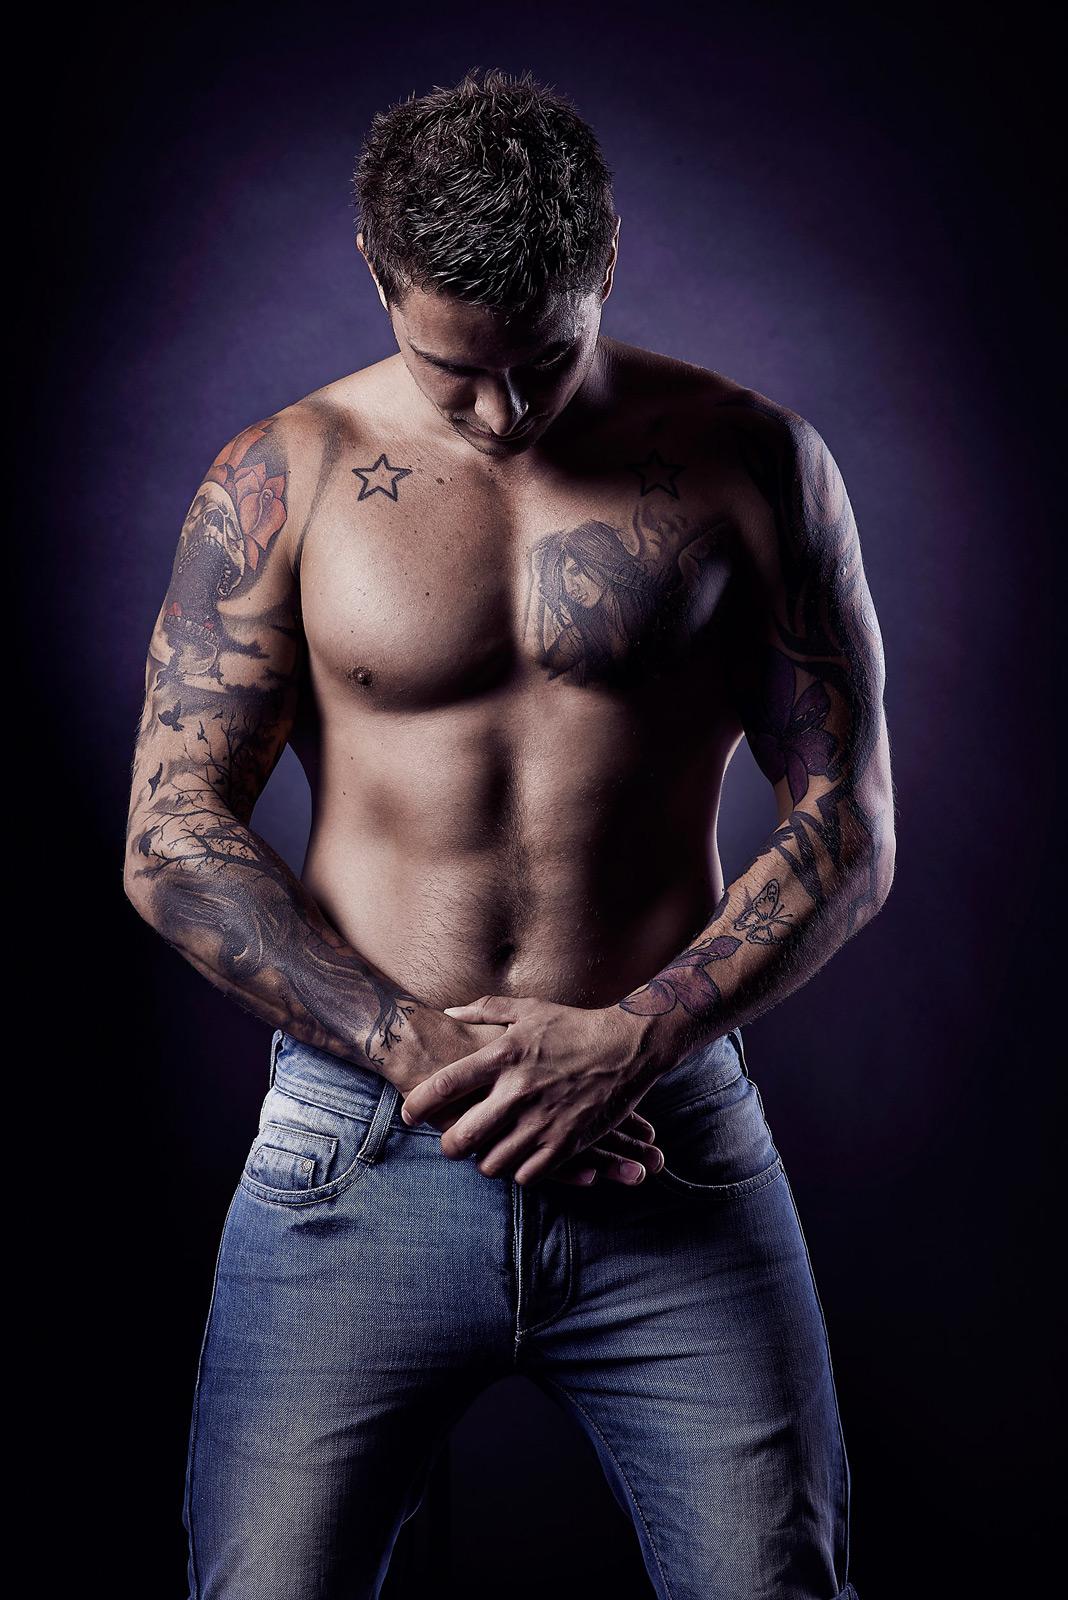 Man with shirt off showing tattoos and looking down